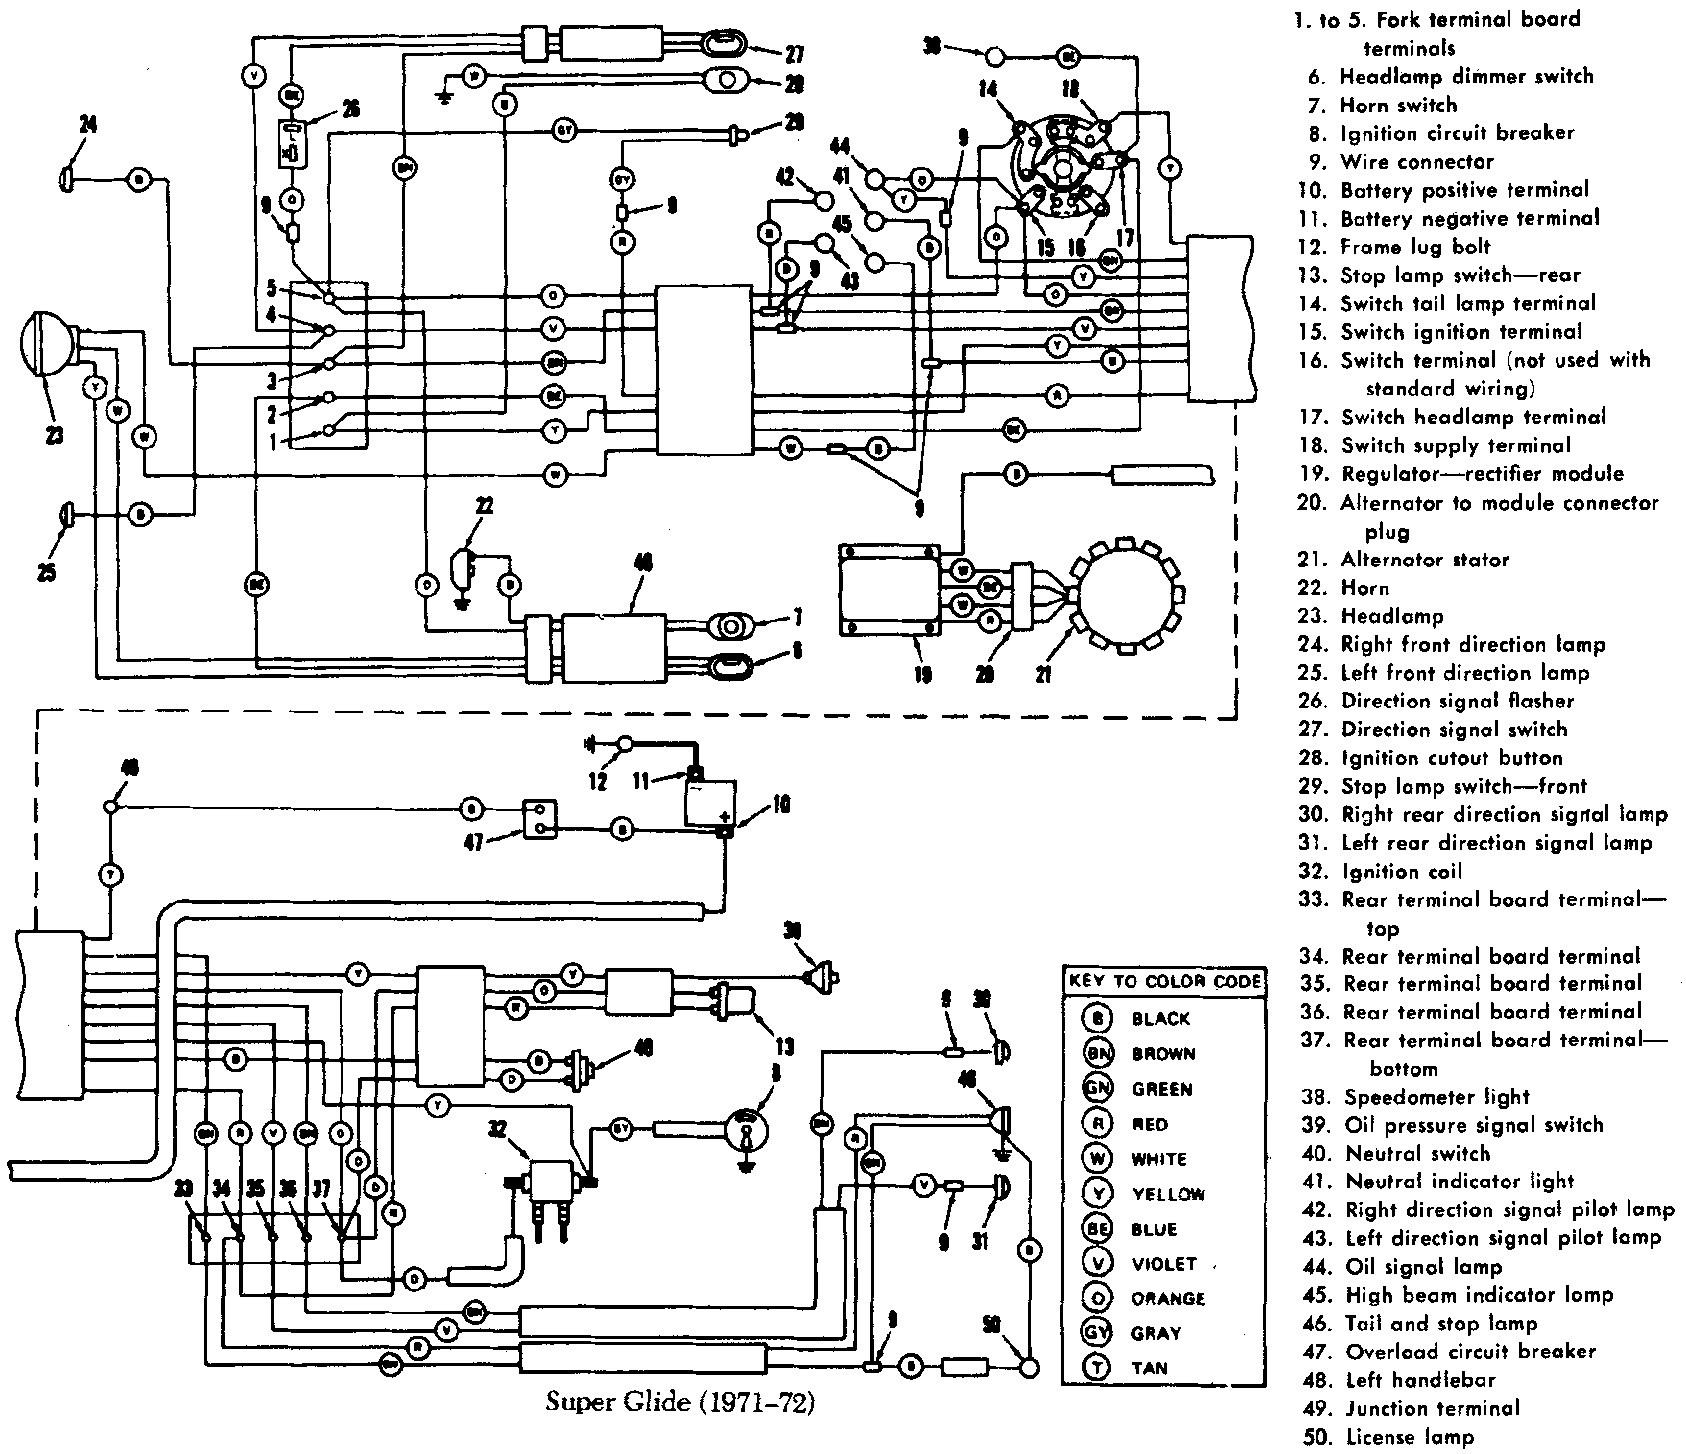 Wrg 1907 Harley Davidson Handlebar Switch Wiring Diagram